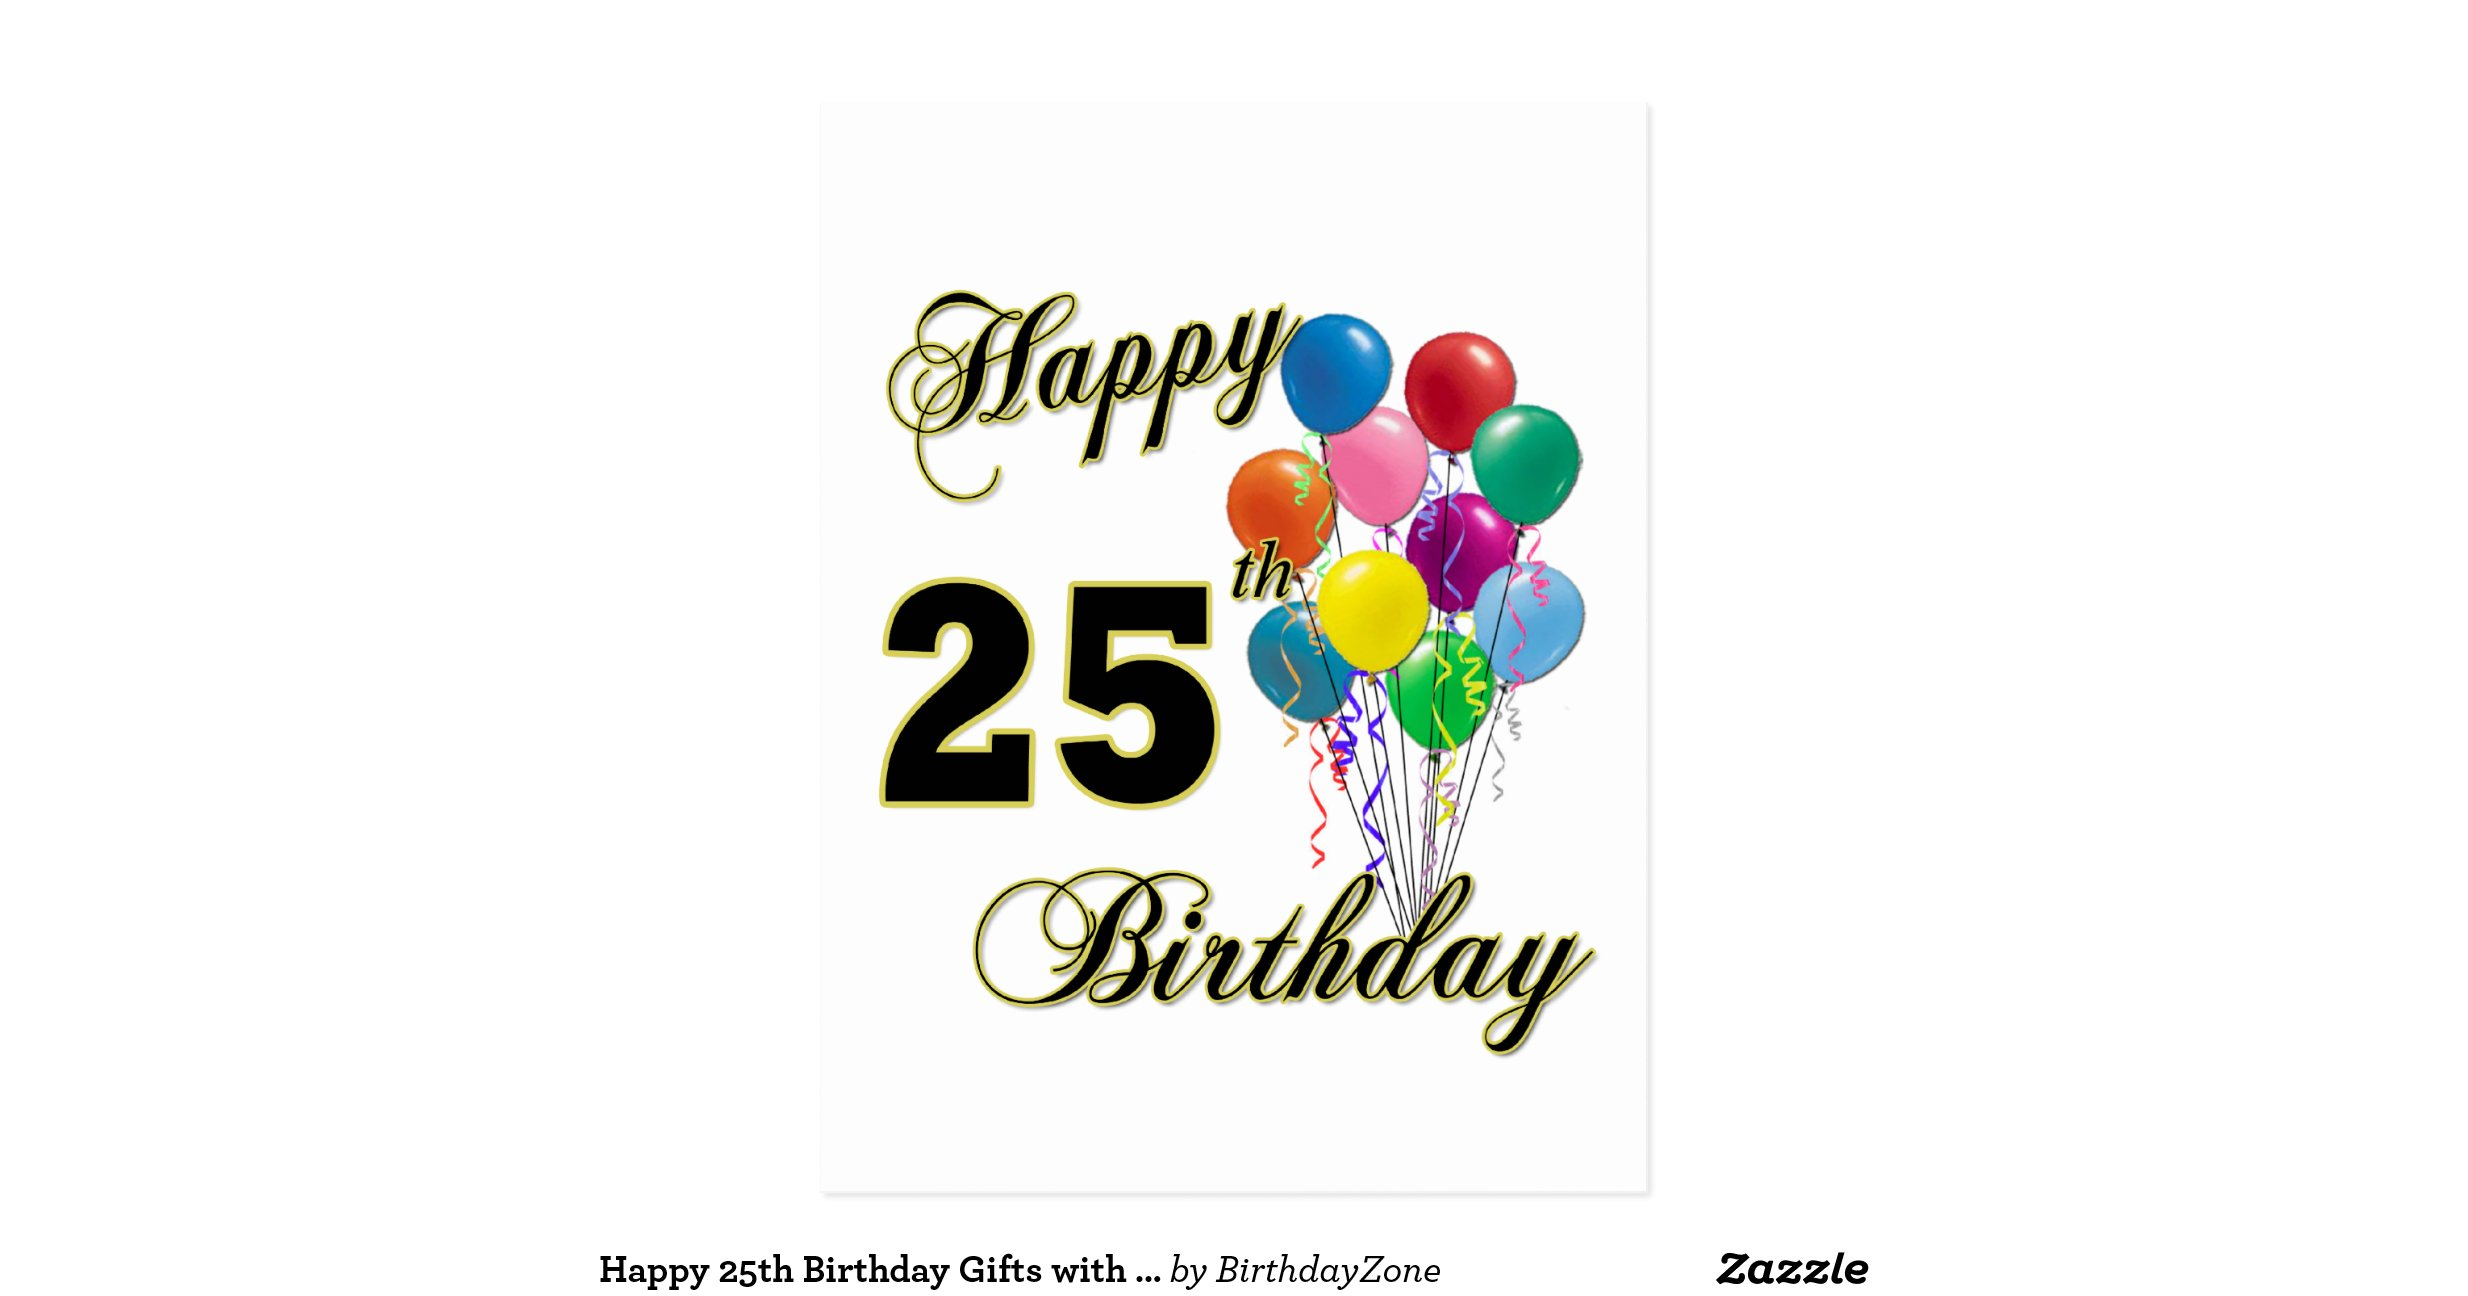 Happy 25th Birthday Gifts with Balloons Postcard